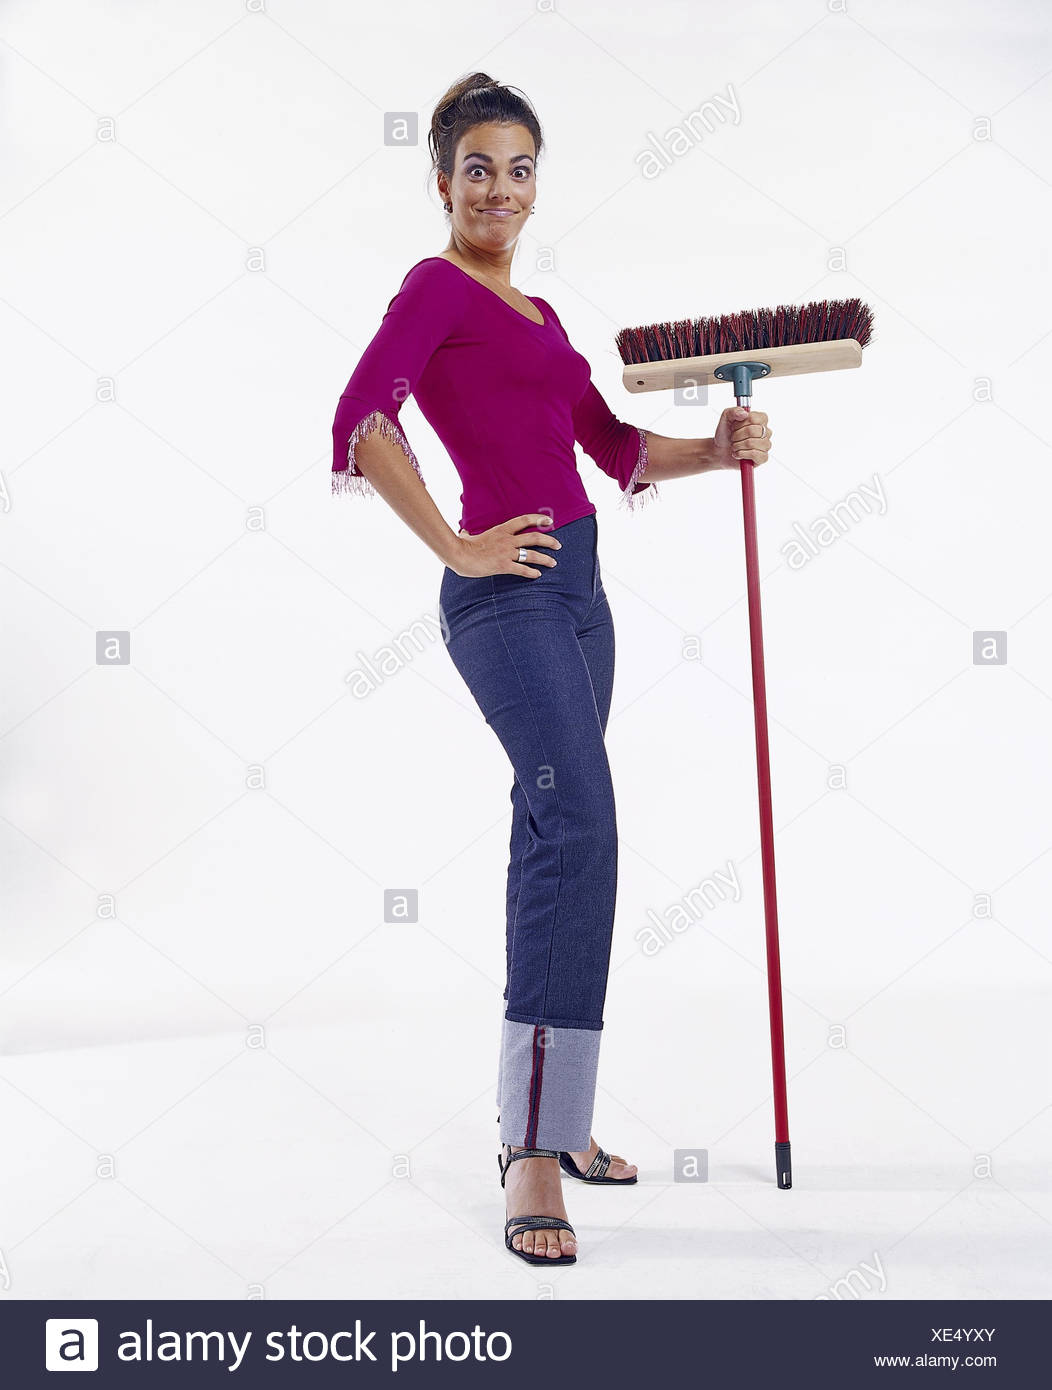 Woman, young, brooms, gesture, energetically, decided, grab women, housewife, vigorously, clean unerringly, determination, clean, sweep, studio, cut outs, - Stock Image